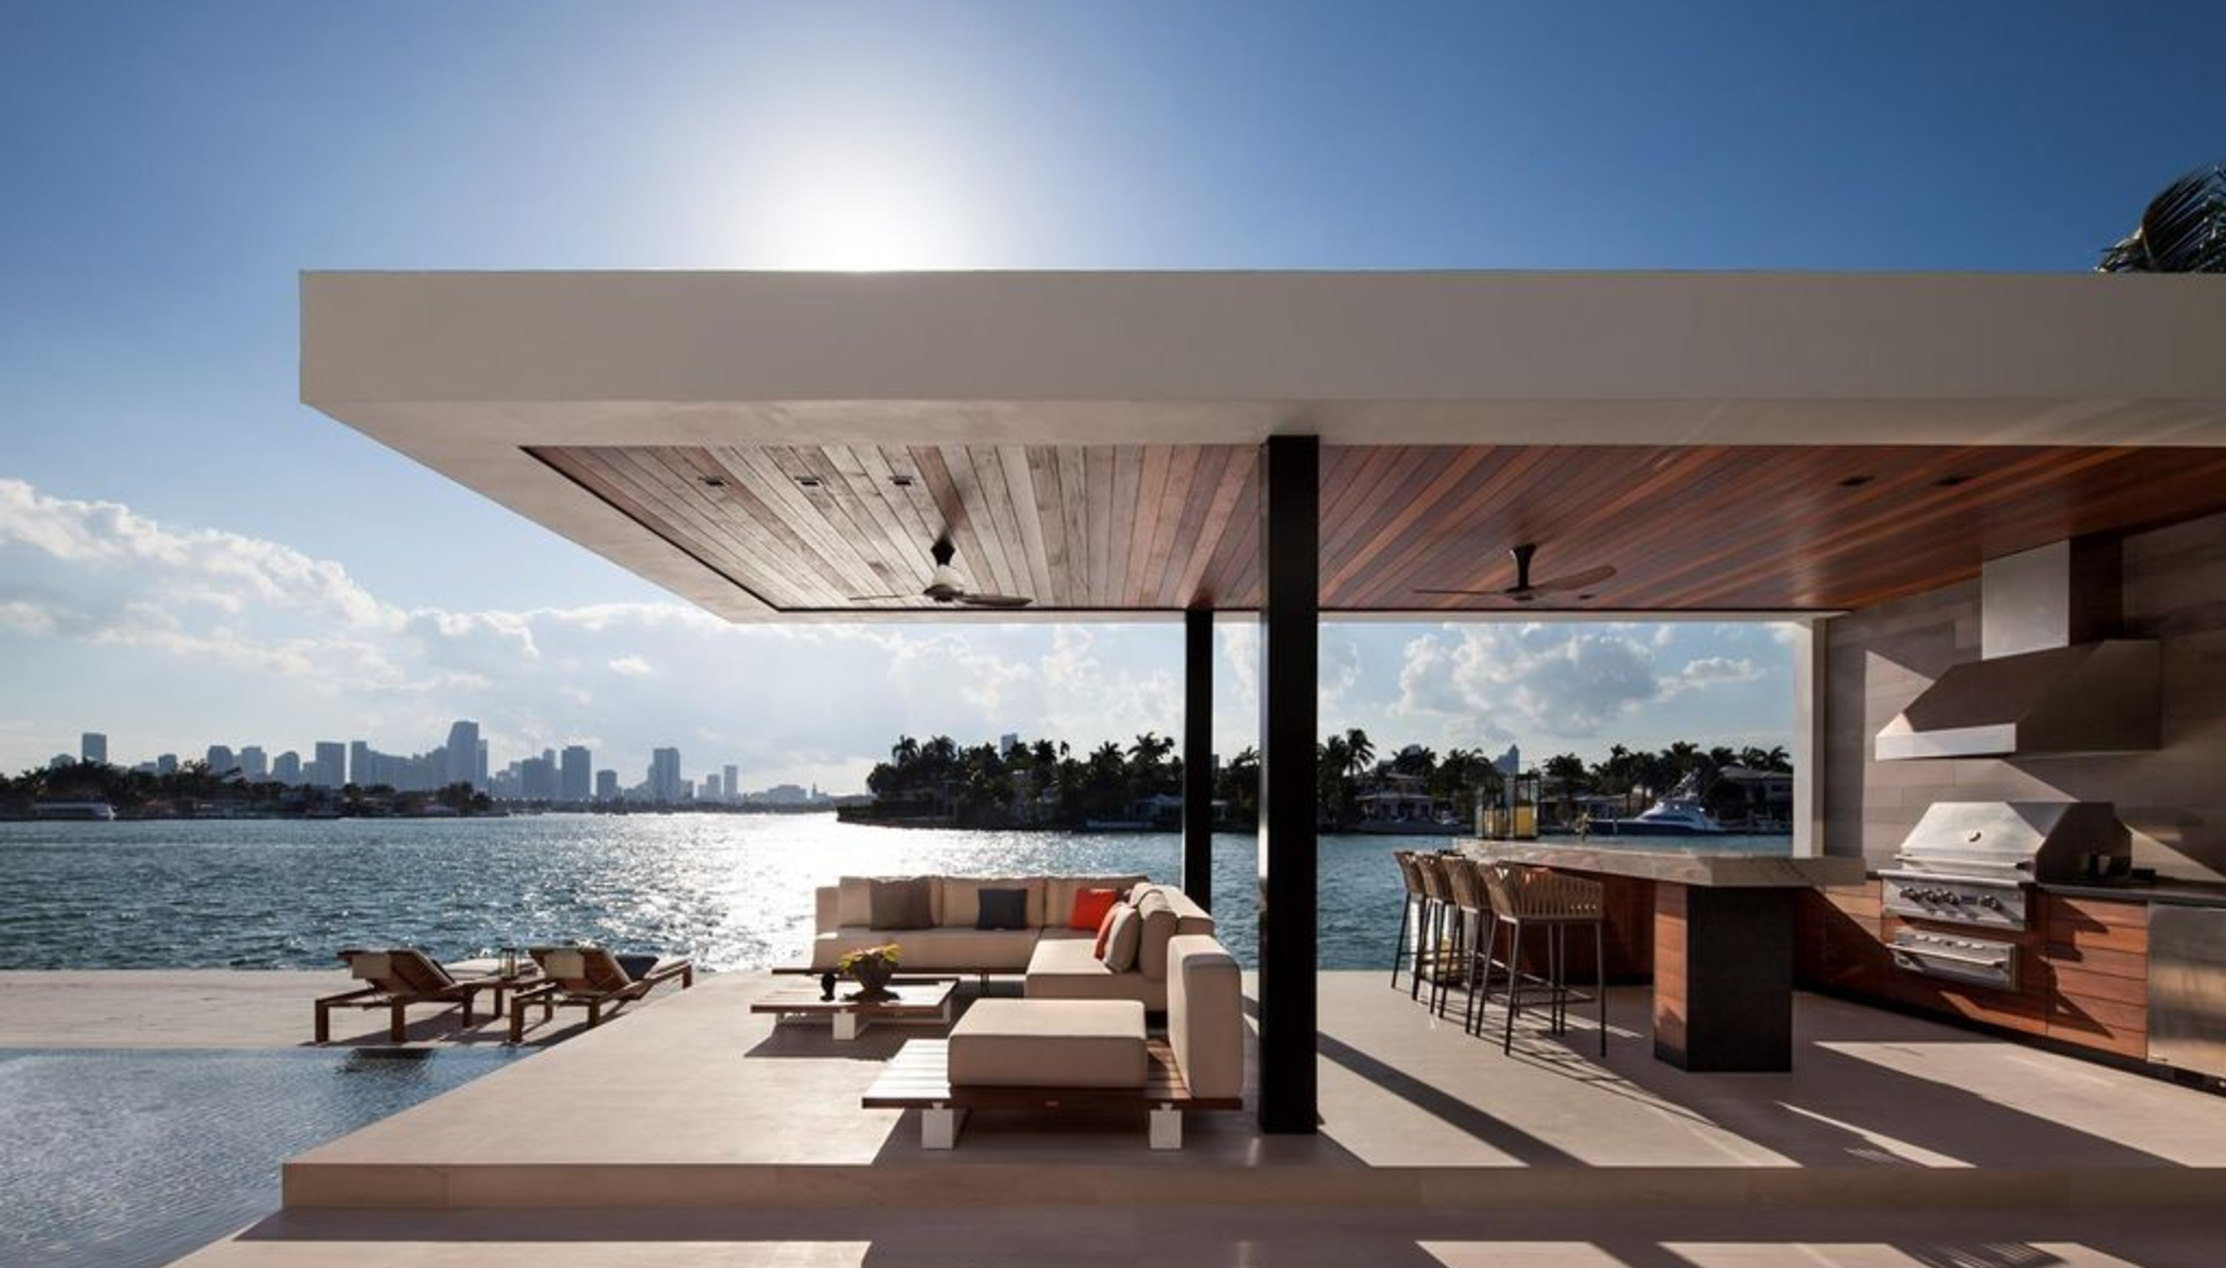 Backyard area of a waterfront home in miami beach with a modern outdoor kitchen overlooking the bay